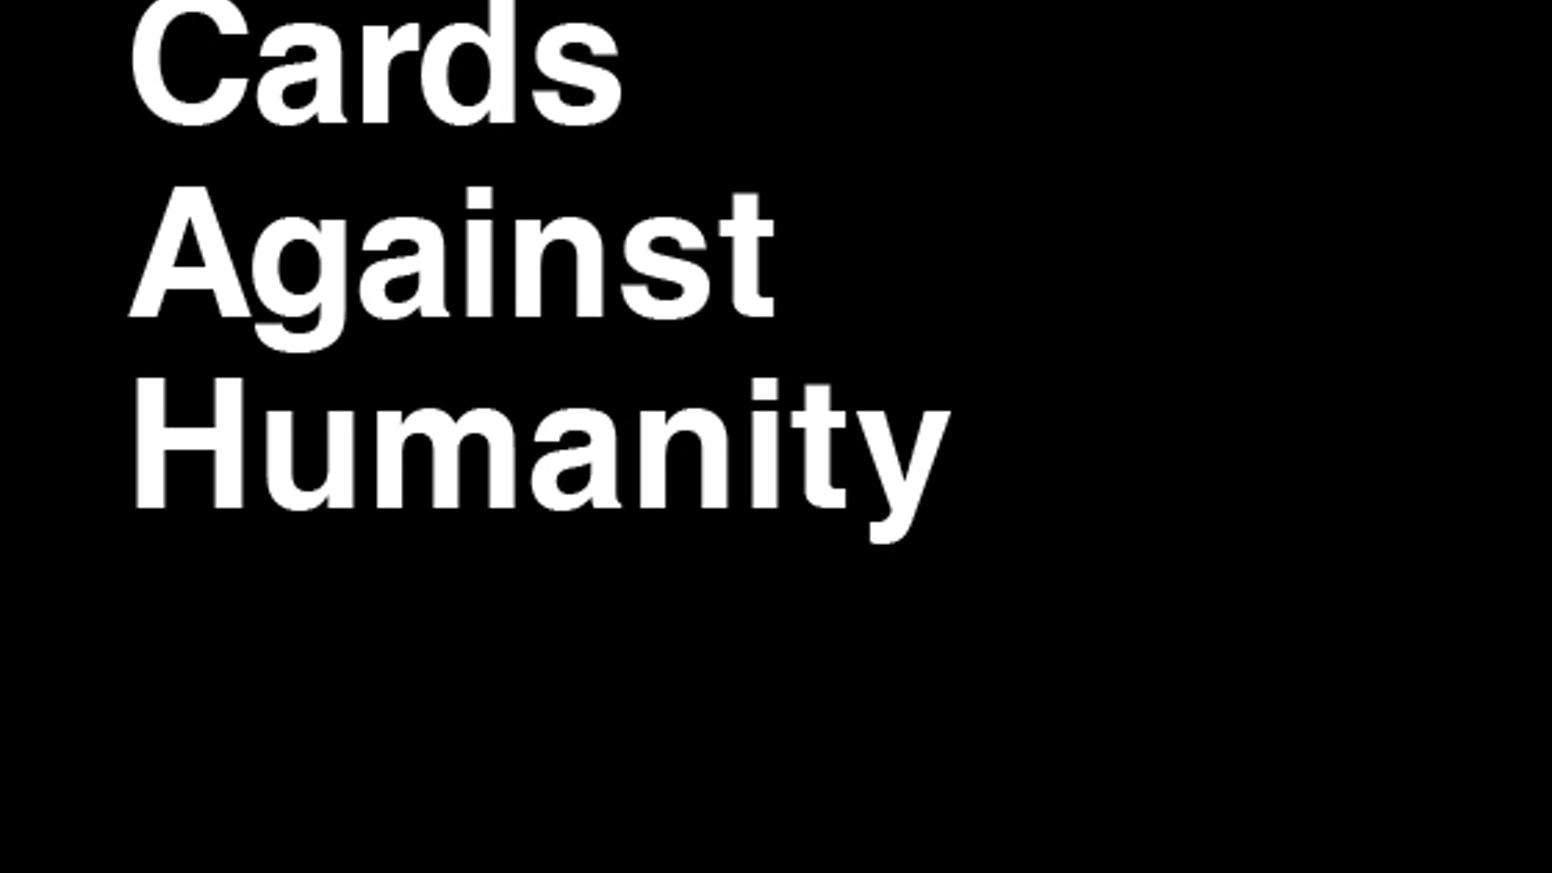 Cards Against Humanity is a  game for horrible people.